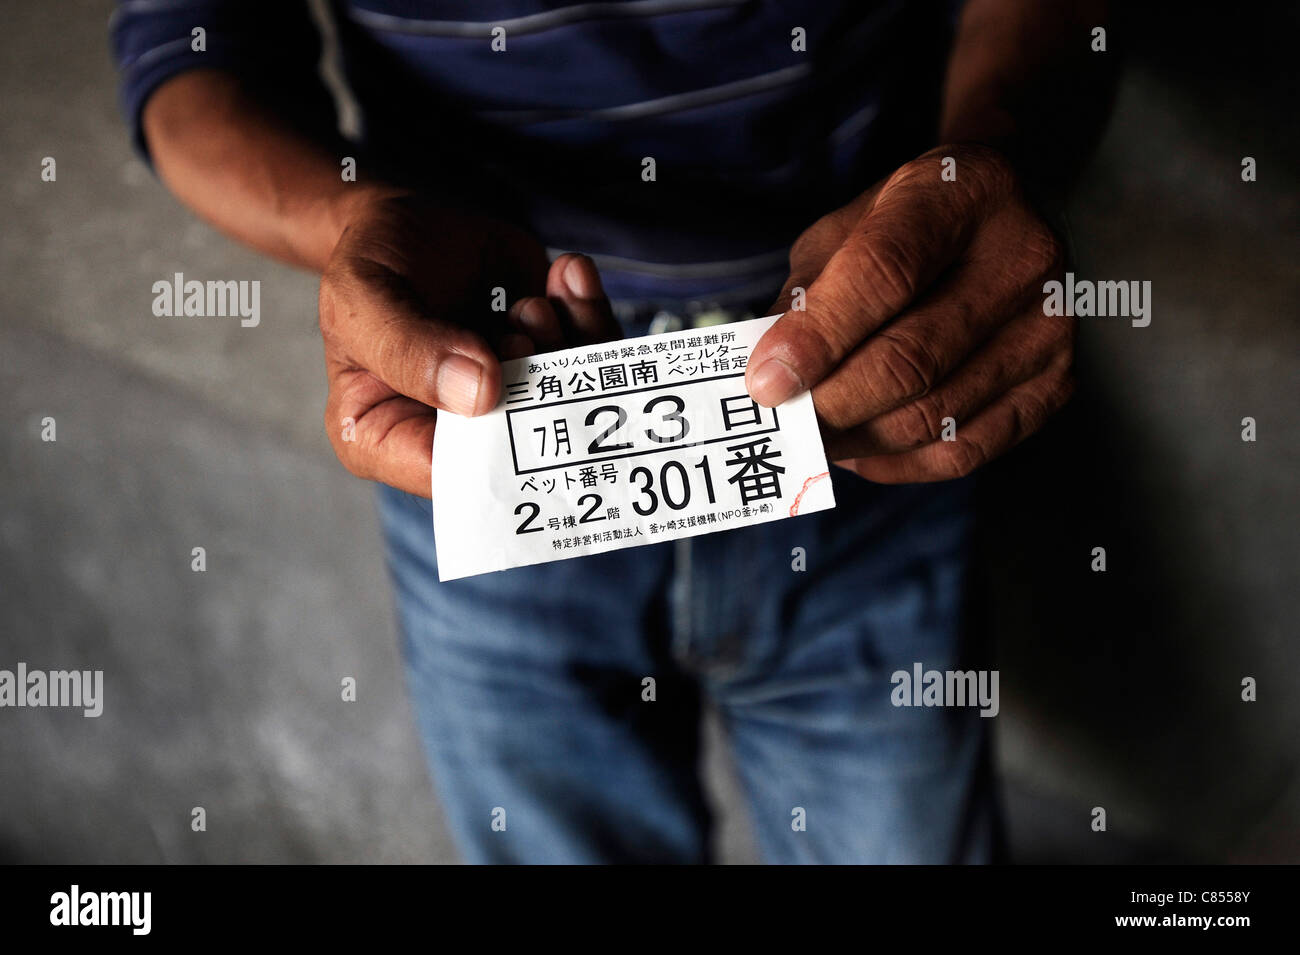 A day laborer shows the ticket he received indicating his bed number at a shelter in the Kamagasaki district of - Stock Image